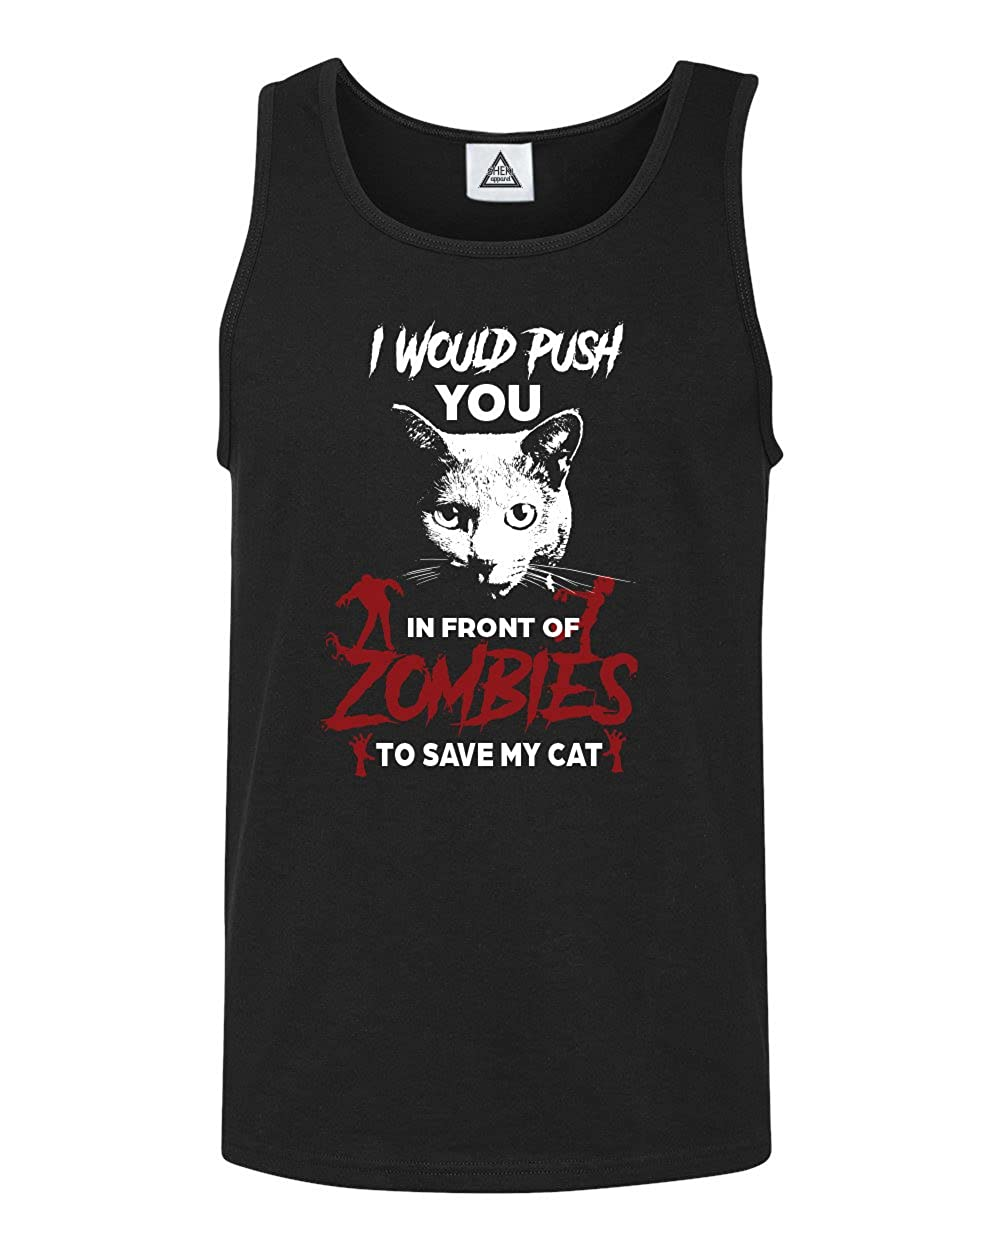 Sheki Apparel Fitted I Would Push You In Front Of Zombies To Save My Cat Tank Top